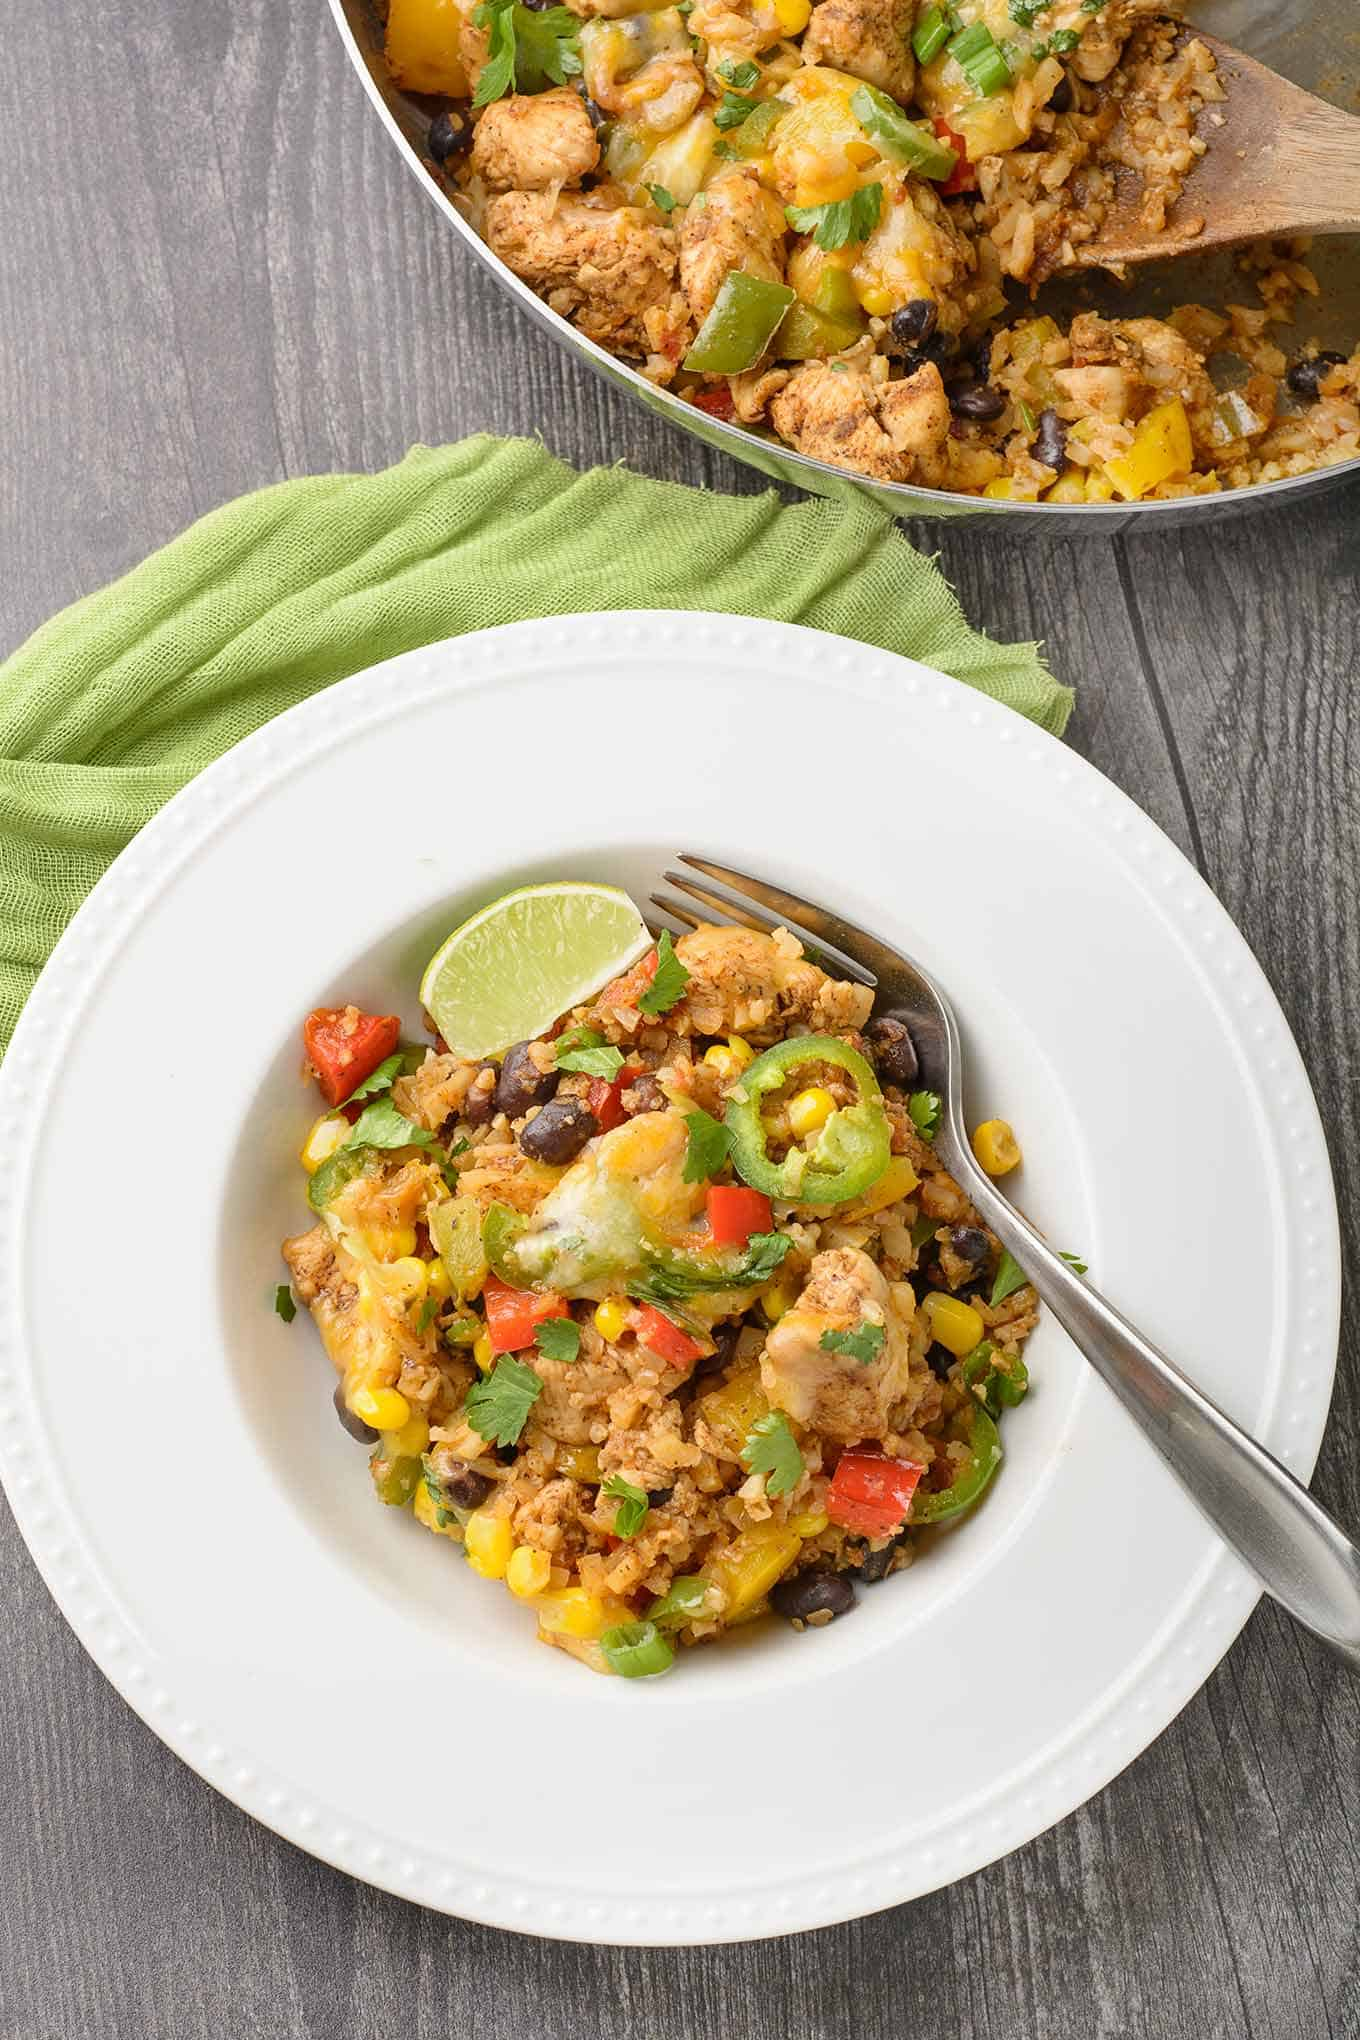 A single serving of chicken and cauliflower rice plated in a shallow bowl with the serving skillet in the background.